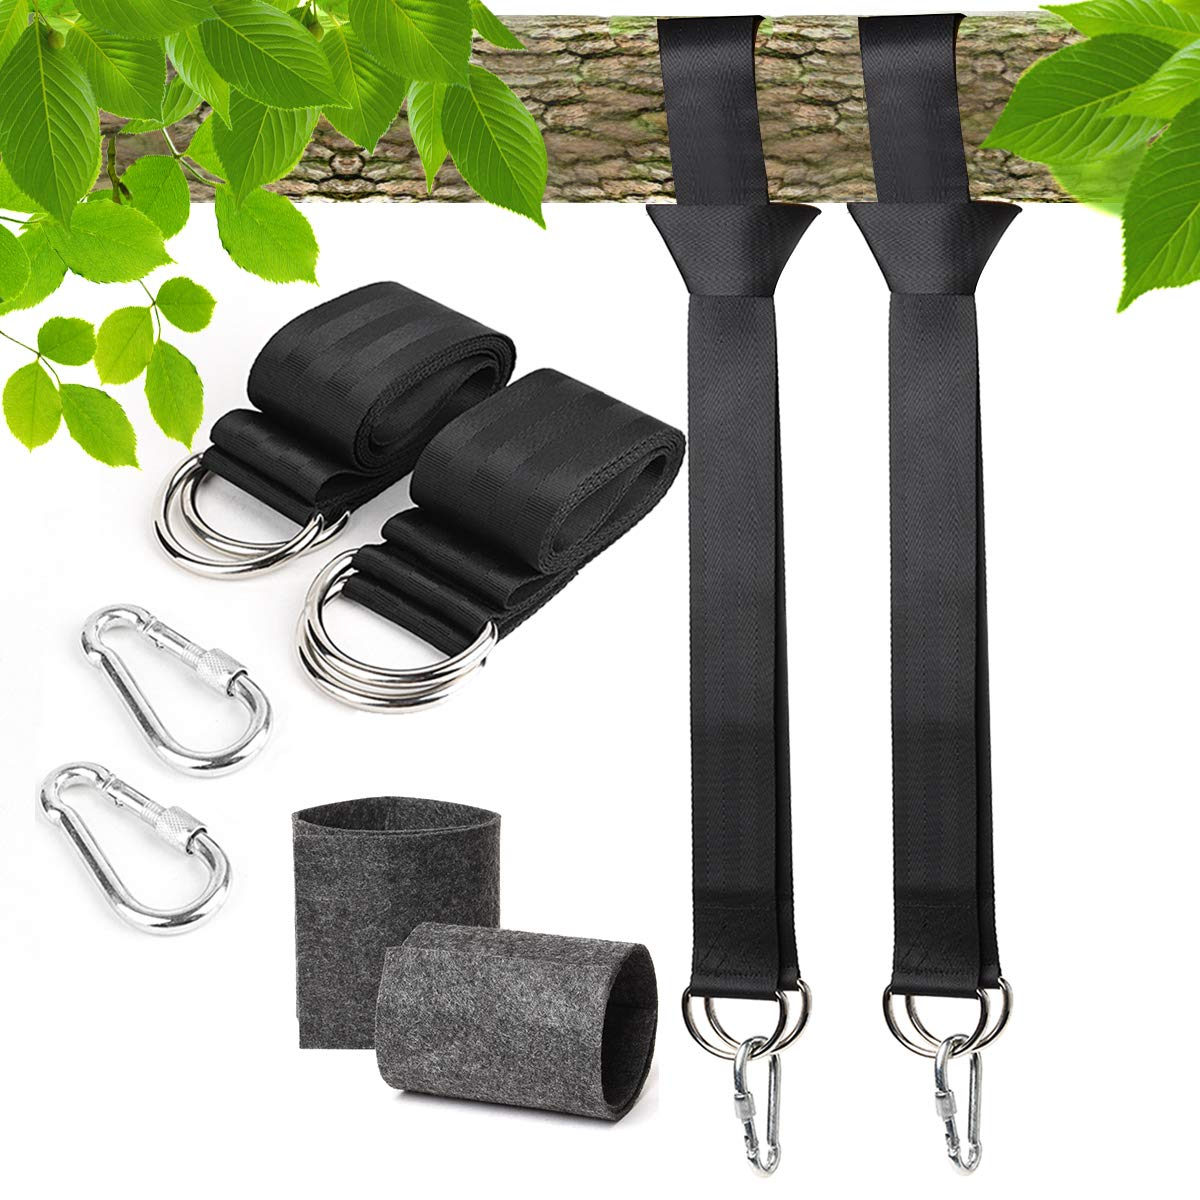 G-TING Tree Swing Hanging Straps Holds 2000lbs For Swings and Hammocks 2pcs 5ft